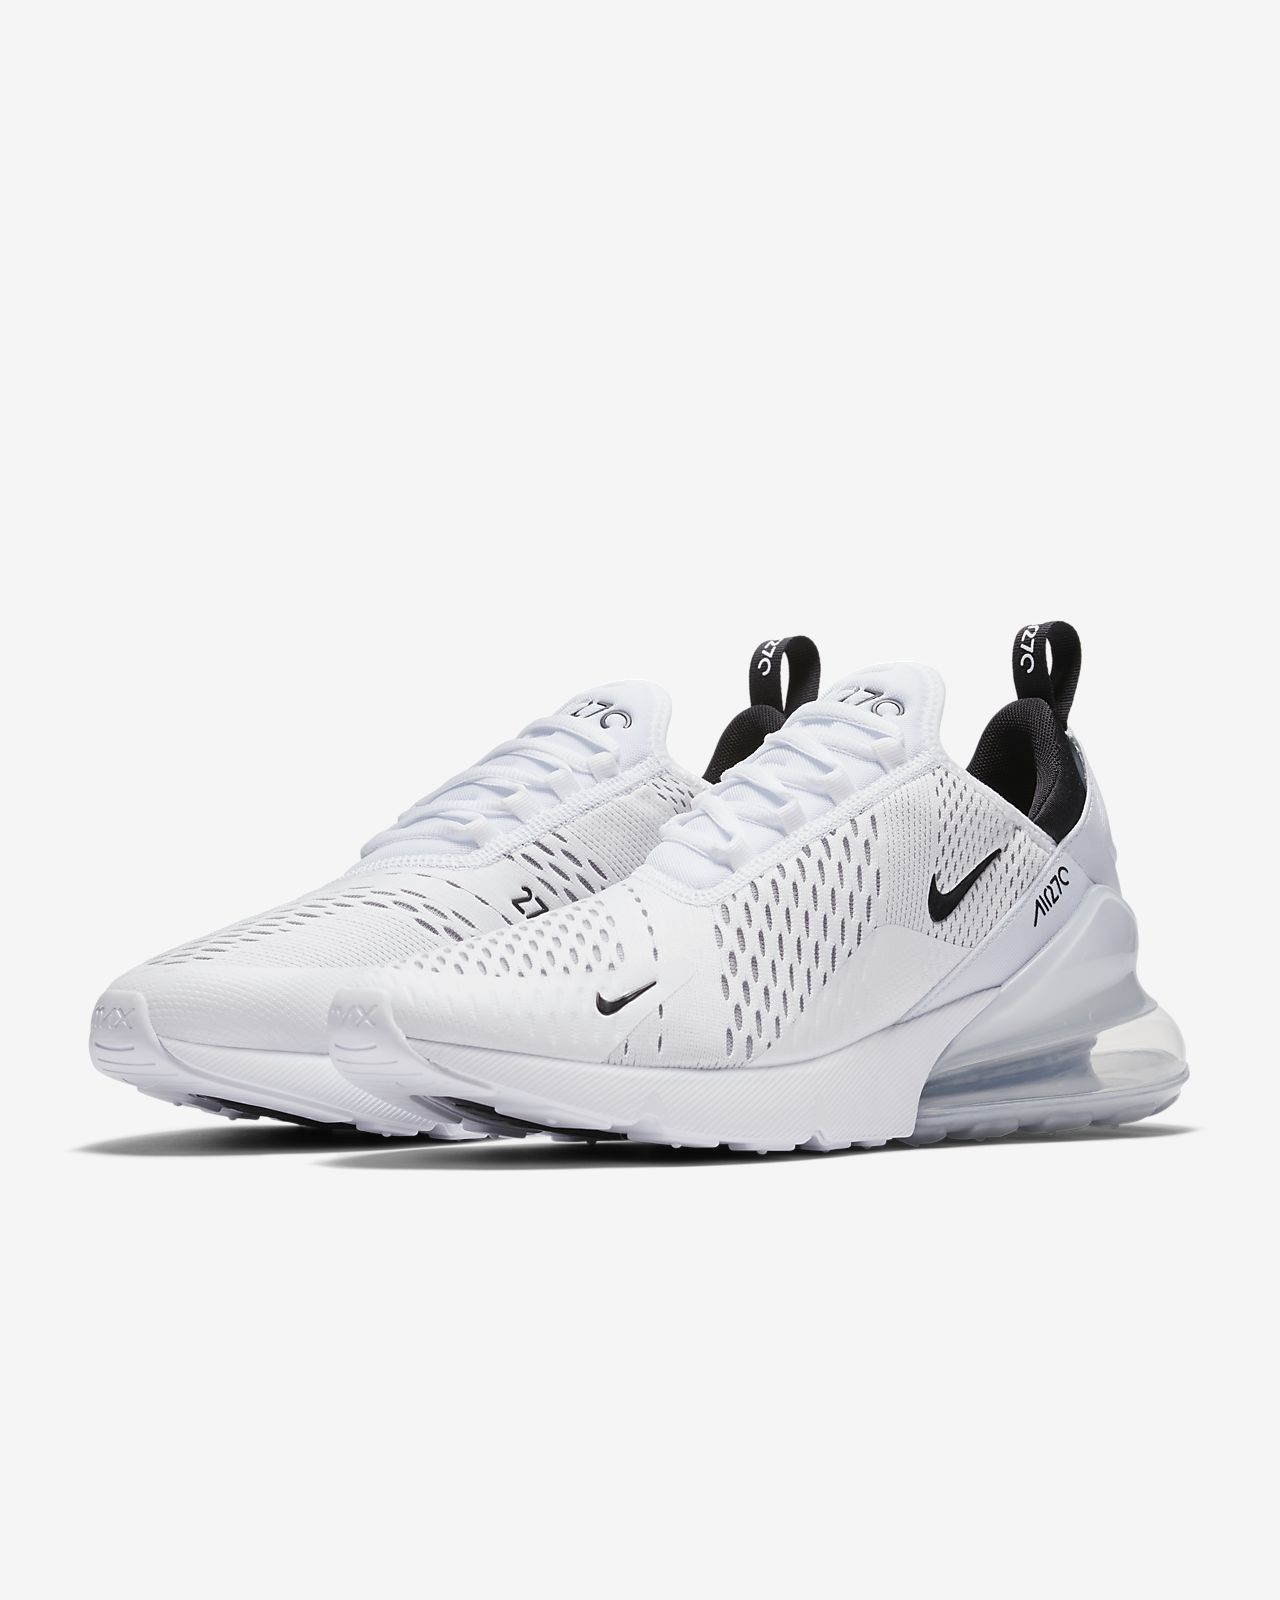 025393ed9 Nike Air Max 270 Men's Shoe | Apparel | Shoes, Nike, Air max 270